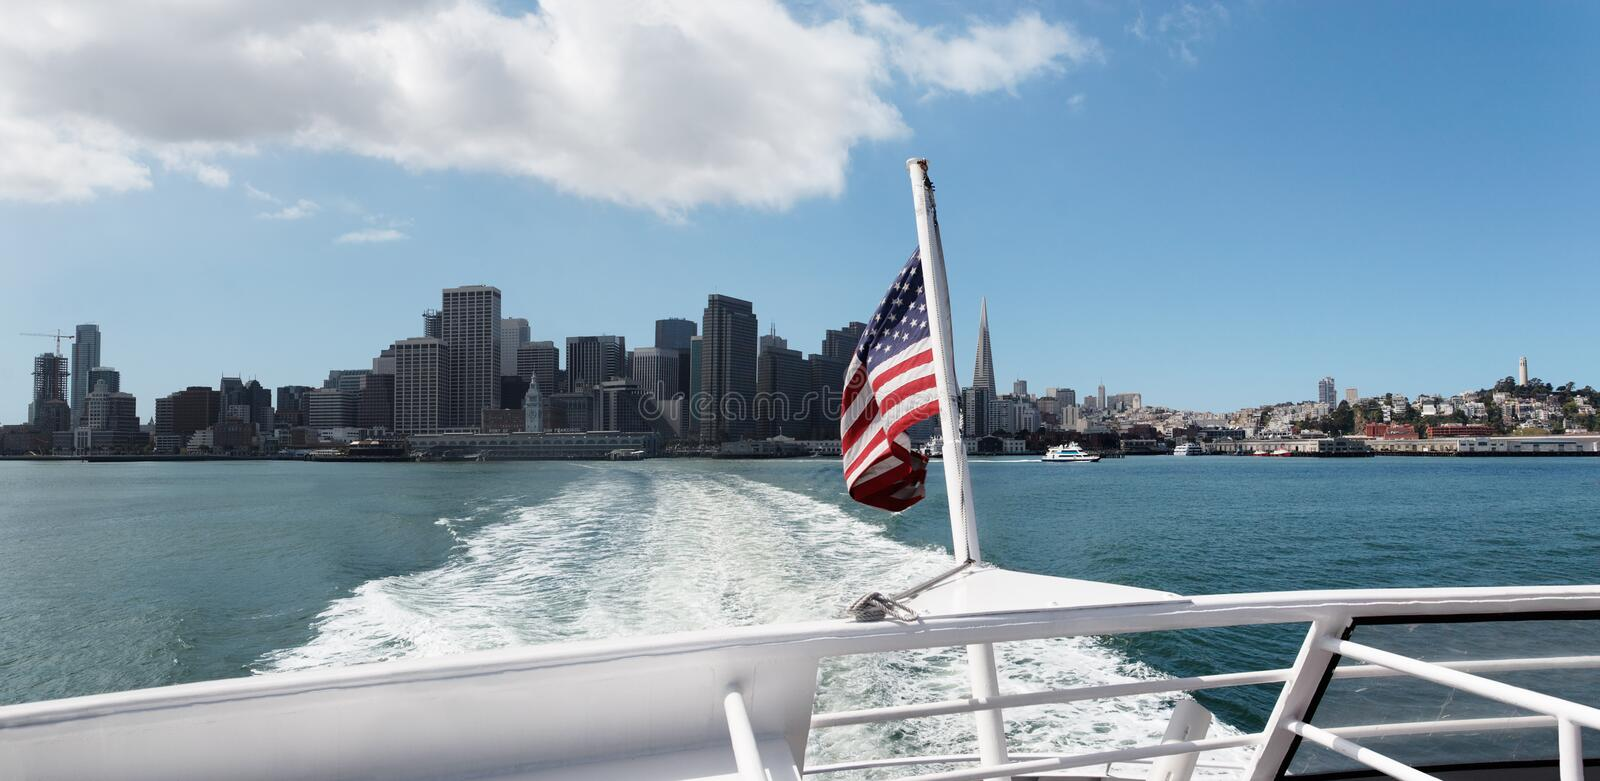 Boot die San Francisco verlaat royalty-vrije stock fotografie